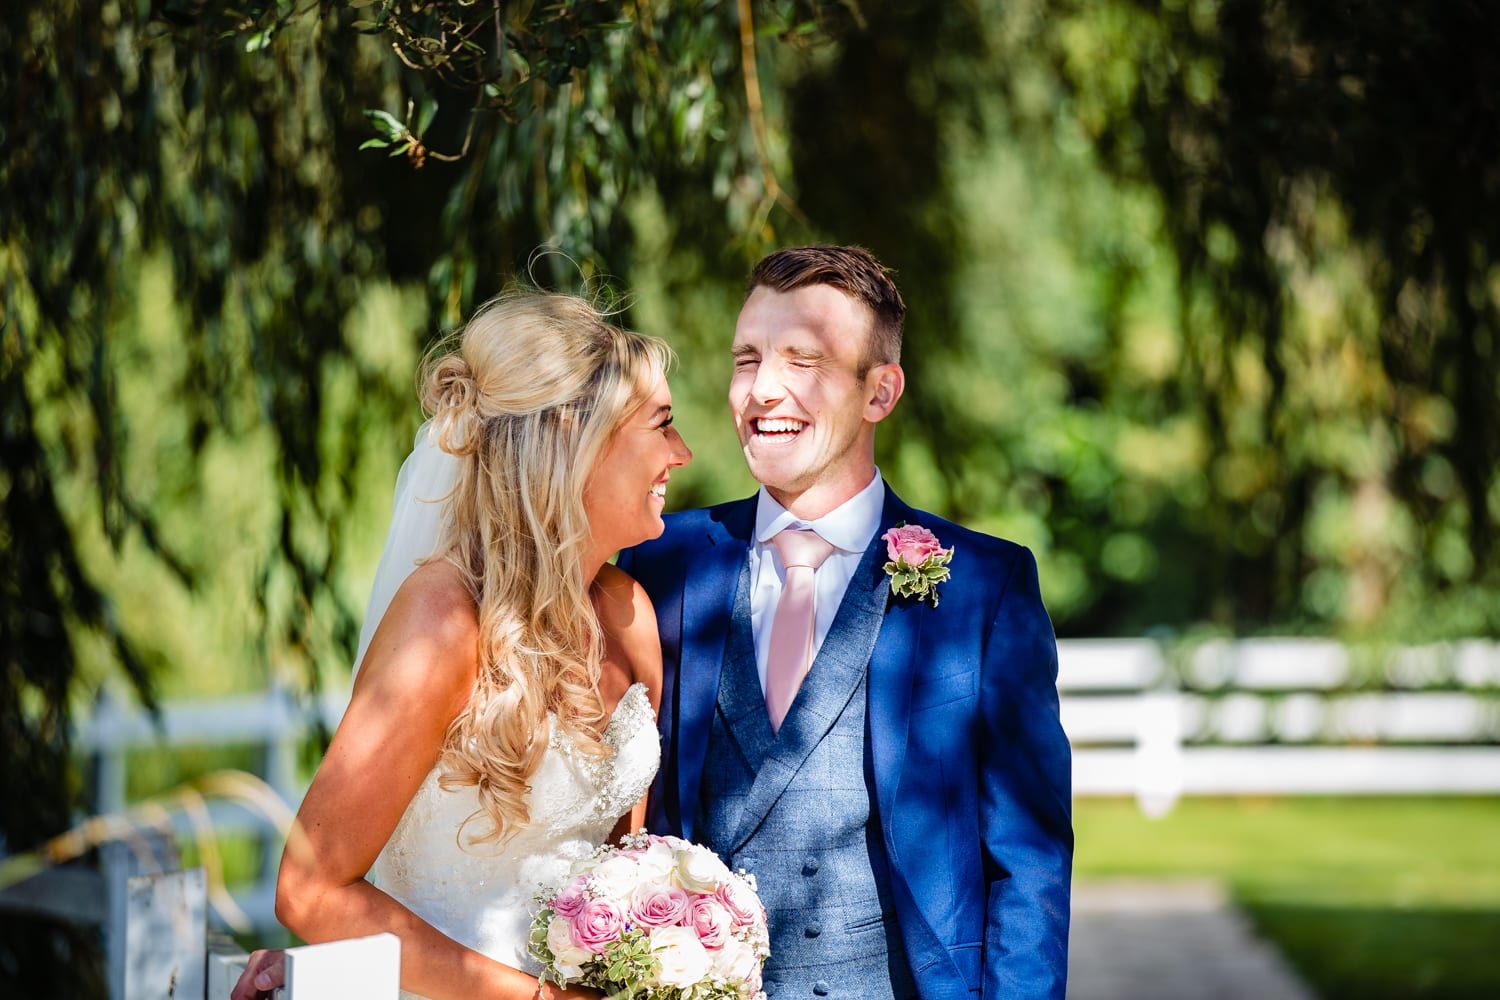 bride and groom portrait - wedding photography Essex